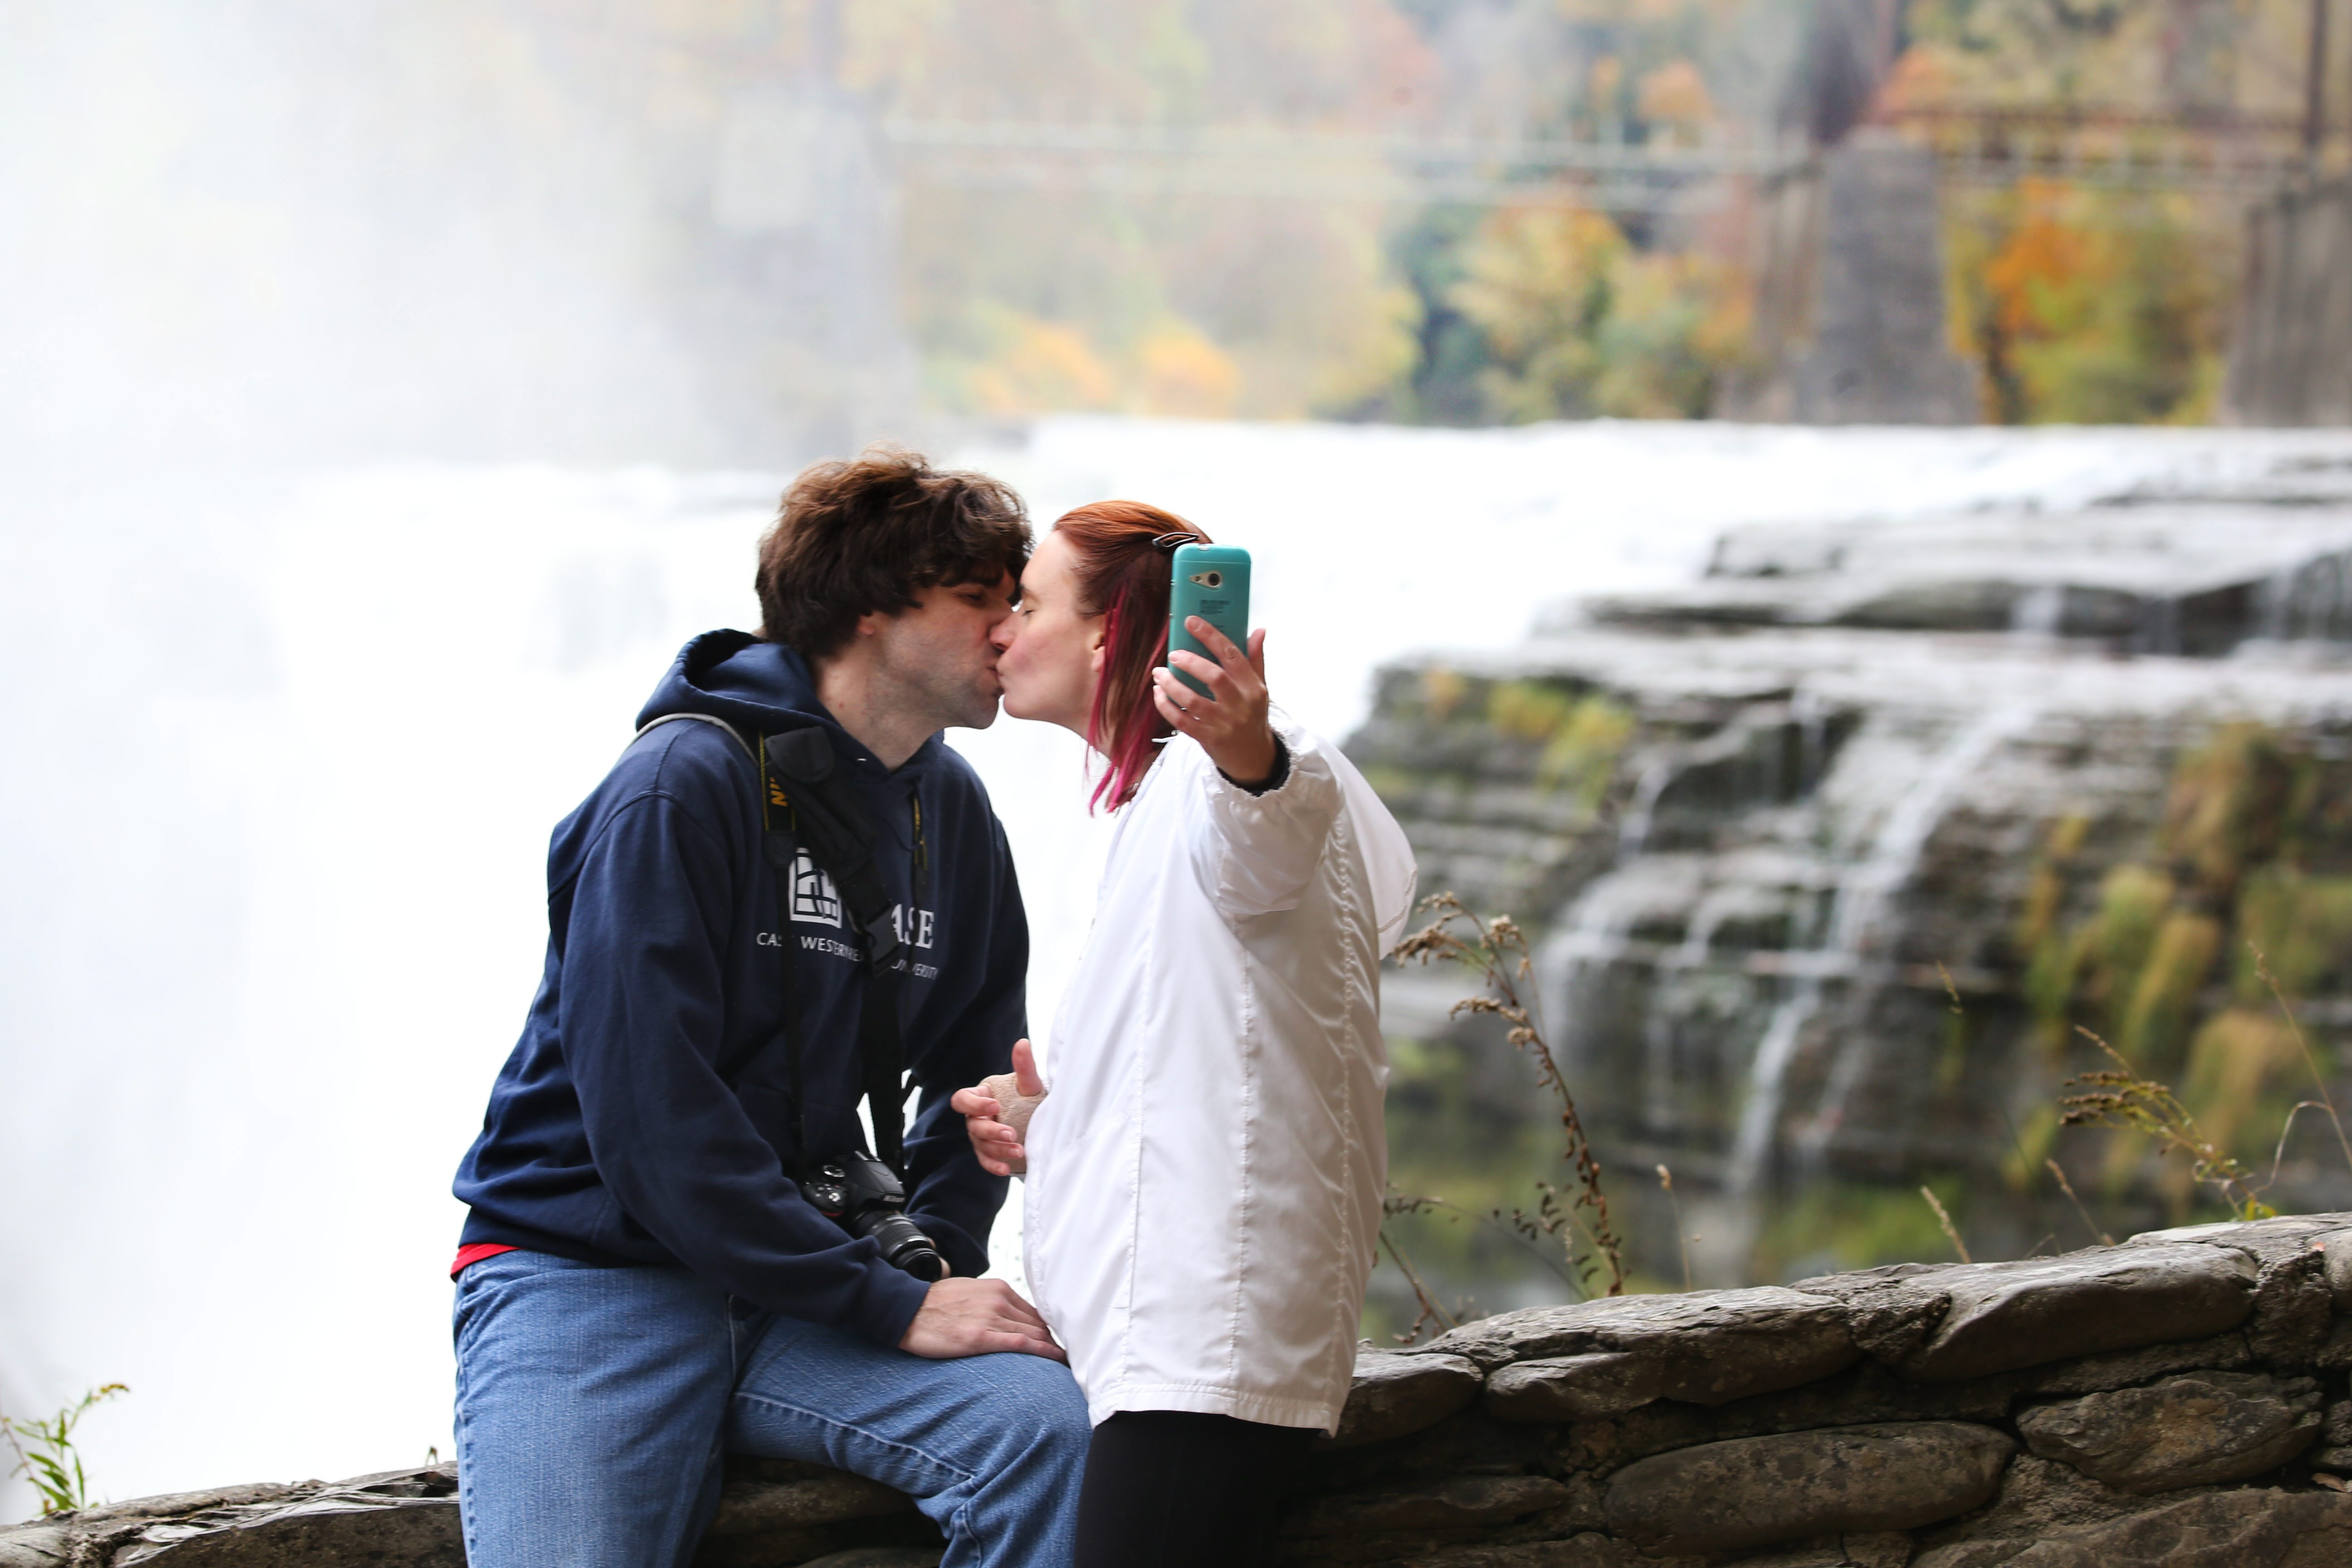 October is the most popular time of the year for Letchworth State Park. Tourists come to see the magnificence of the changing leaves in this majestic setting. Here, Chris and Angel English of Williamson take a selfie on their anniversary in front of the upper falls. (Sharon Cantillon/Buffalo News)